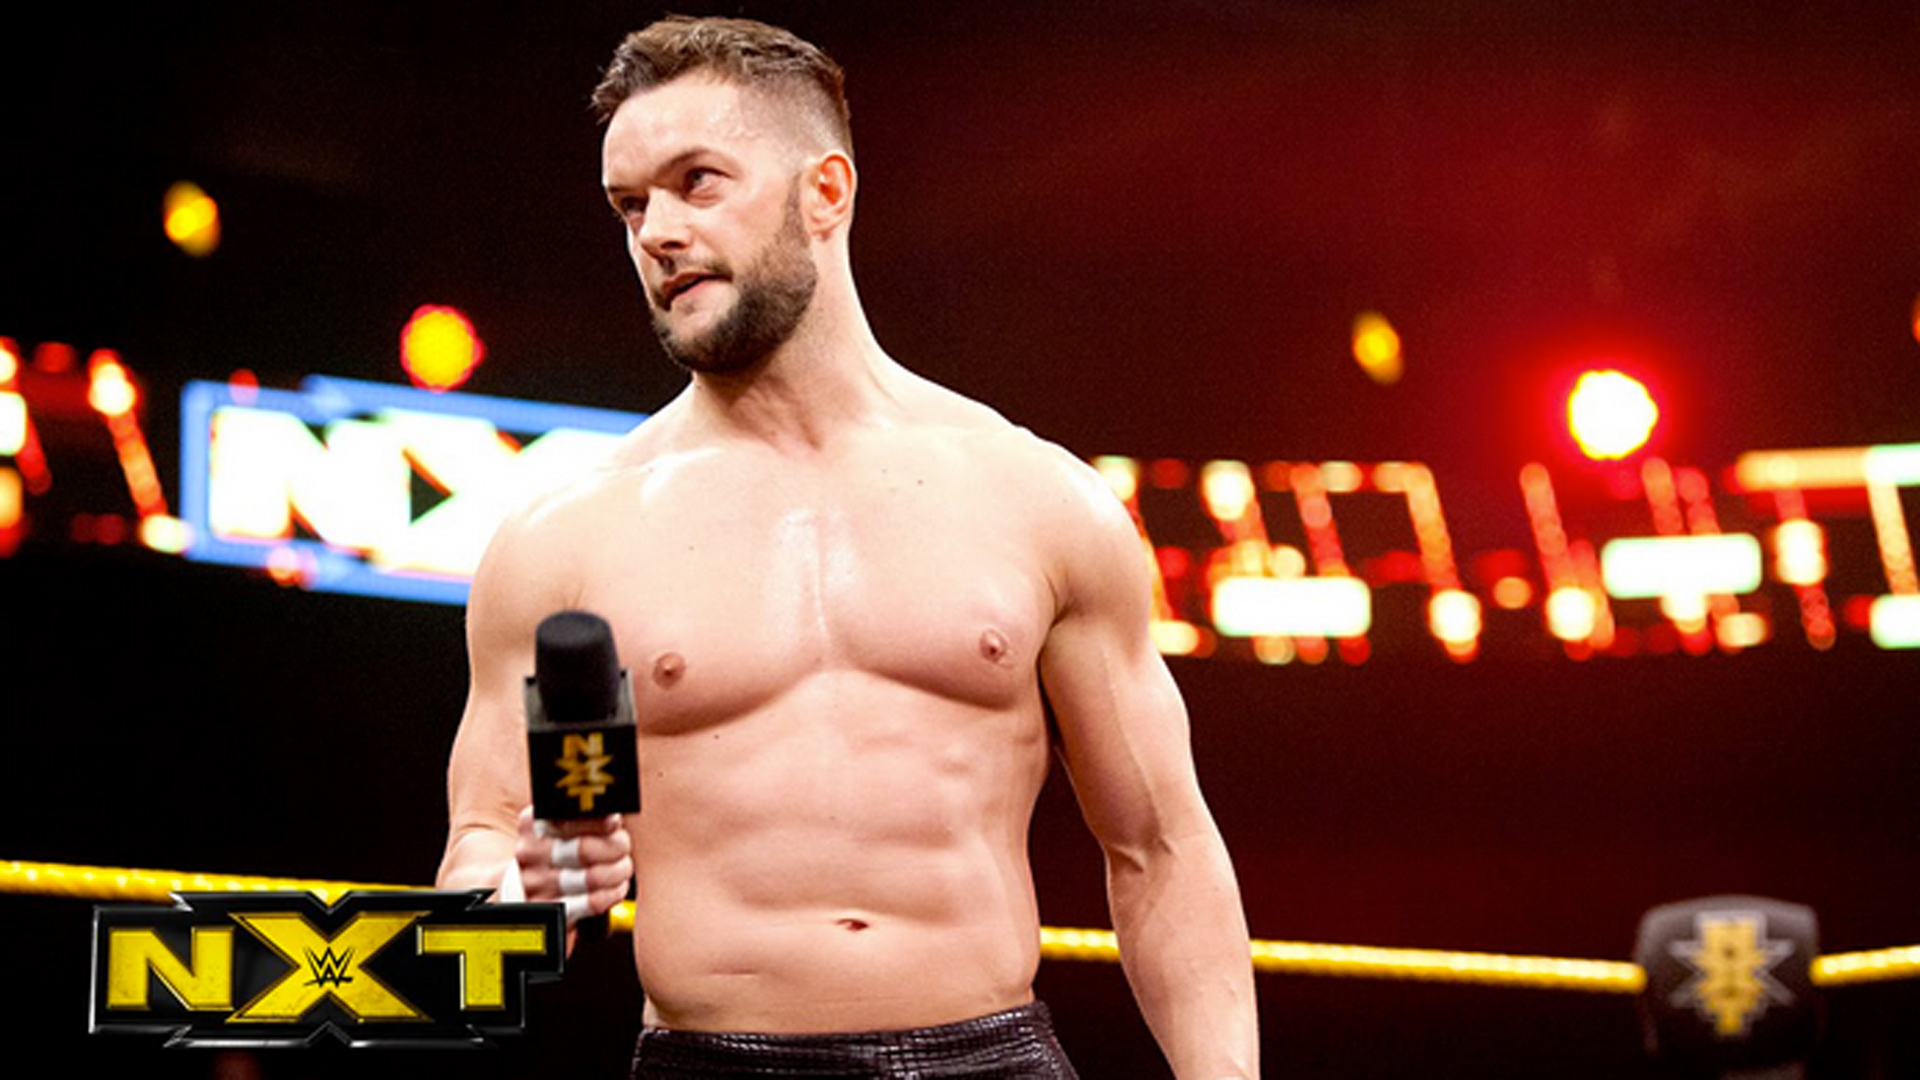 nxt champion finn balor helping answer the call for families of fallen nyc heroes wwe. Black Bedroom Furniture Sets. Home Design Ideas